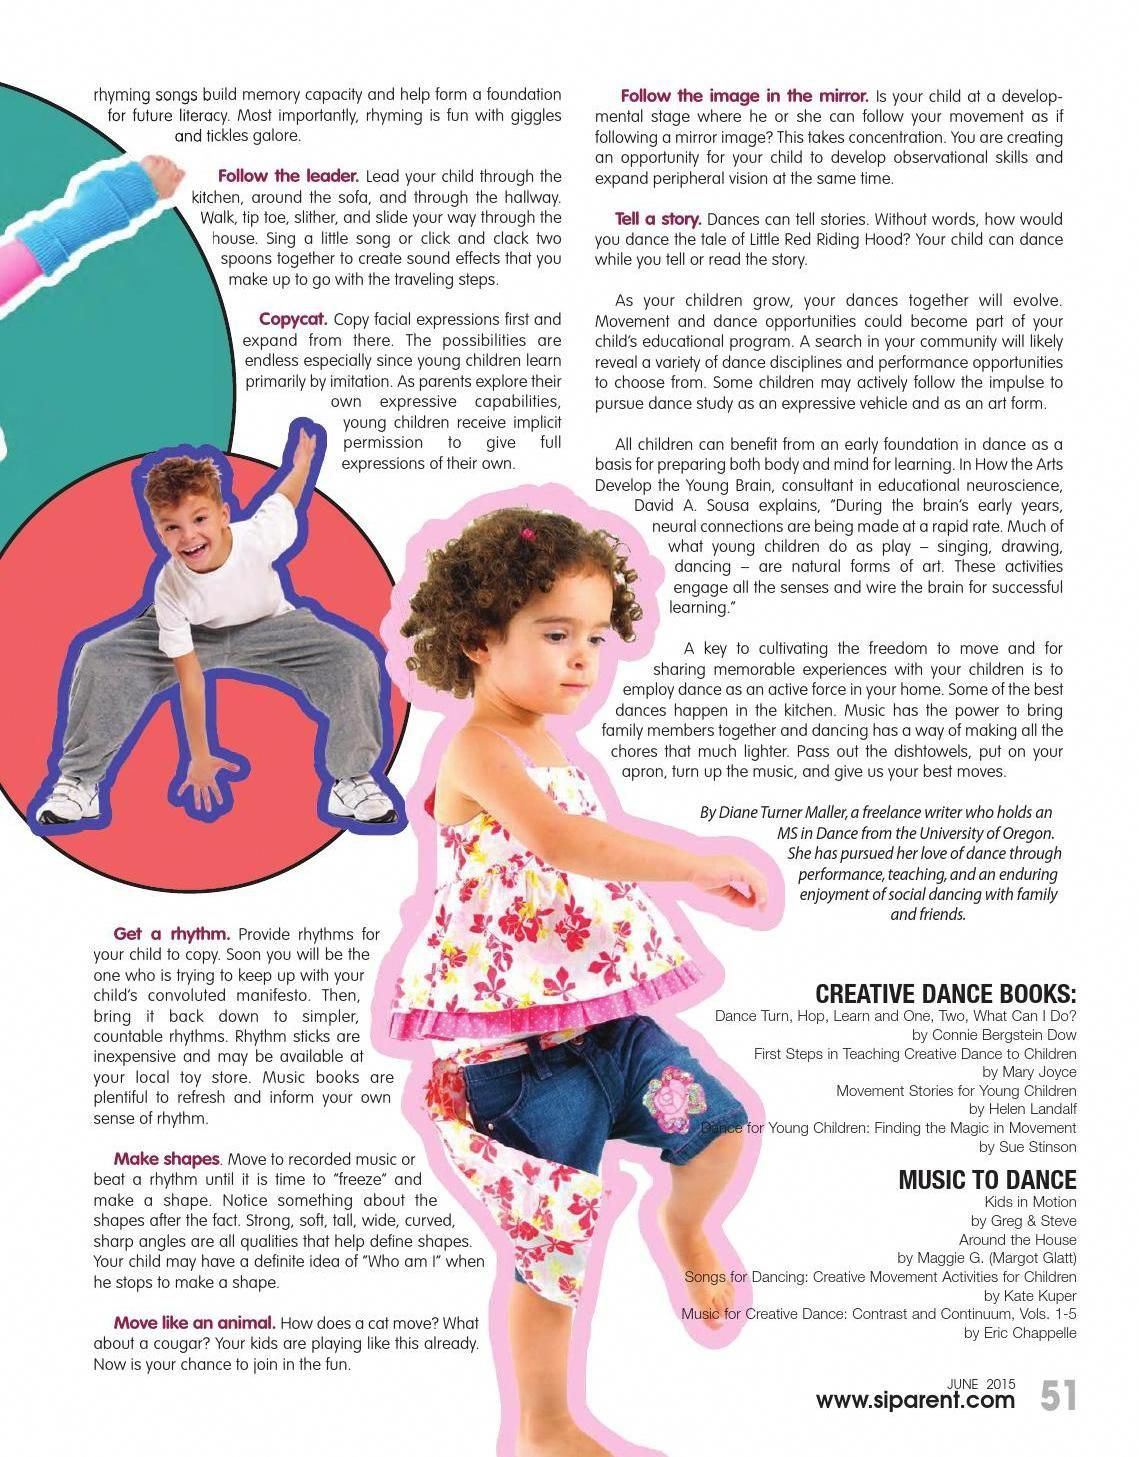 Staten Island Parent Magazine June 2015 Positive Discipline